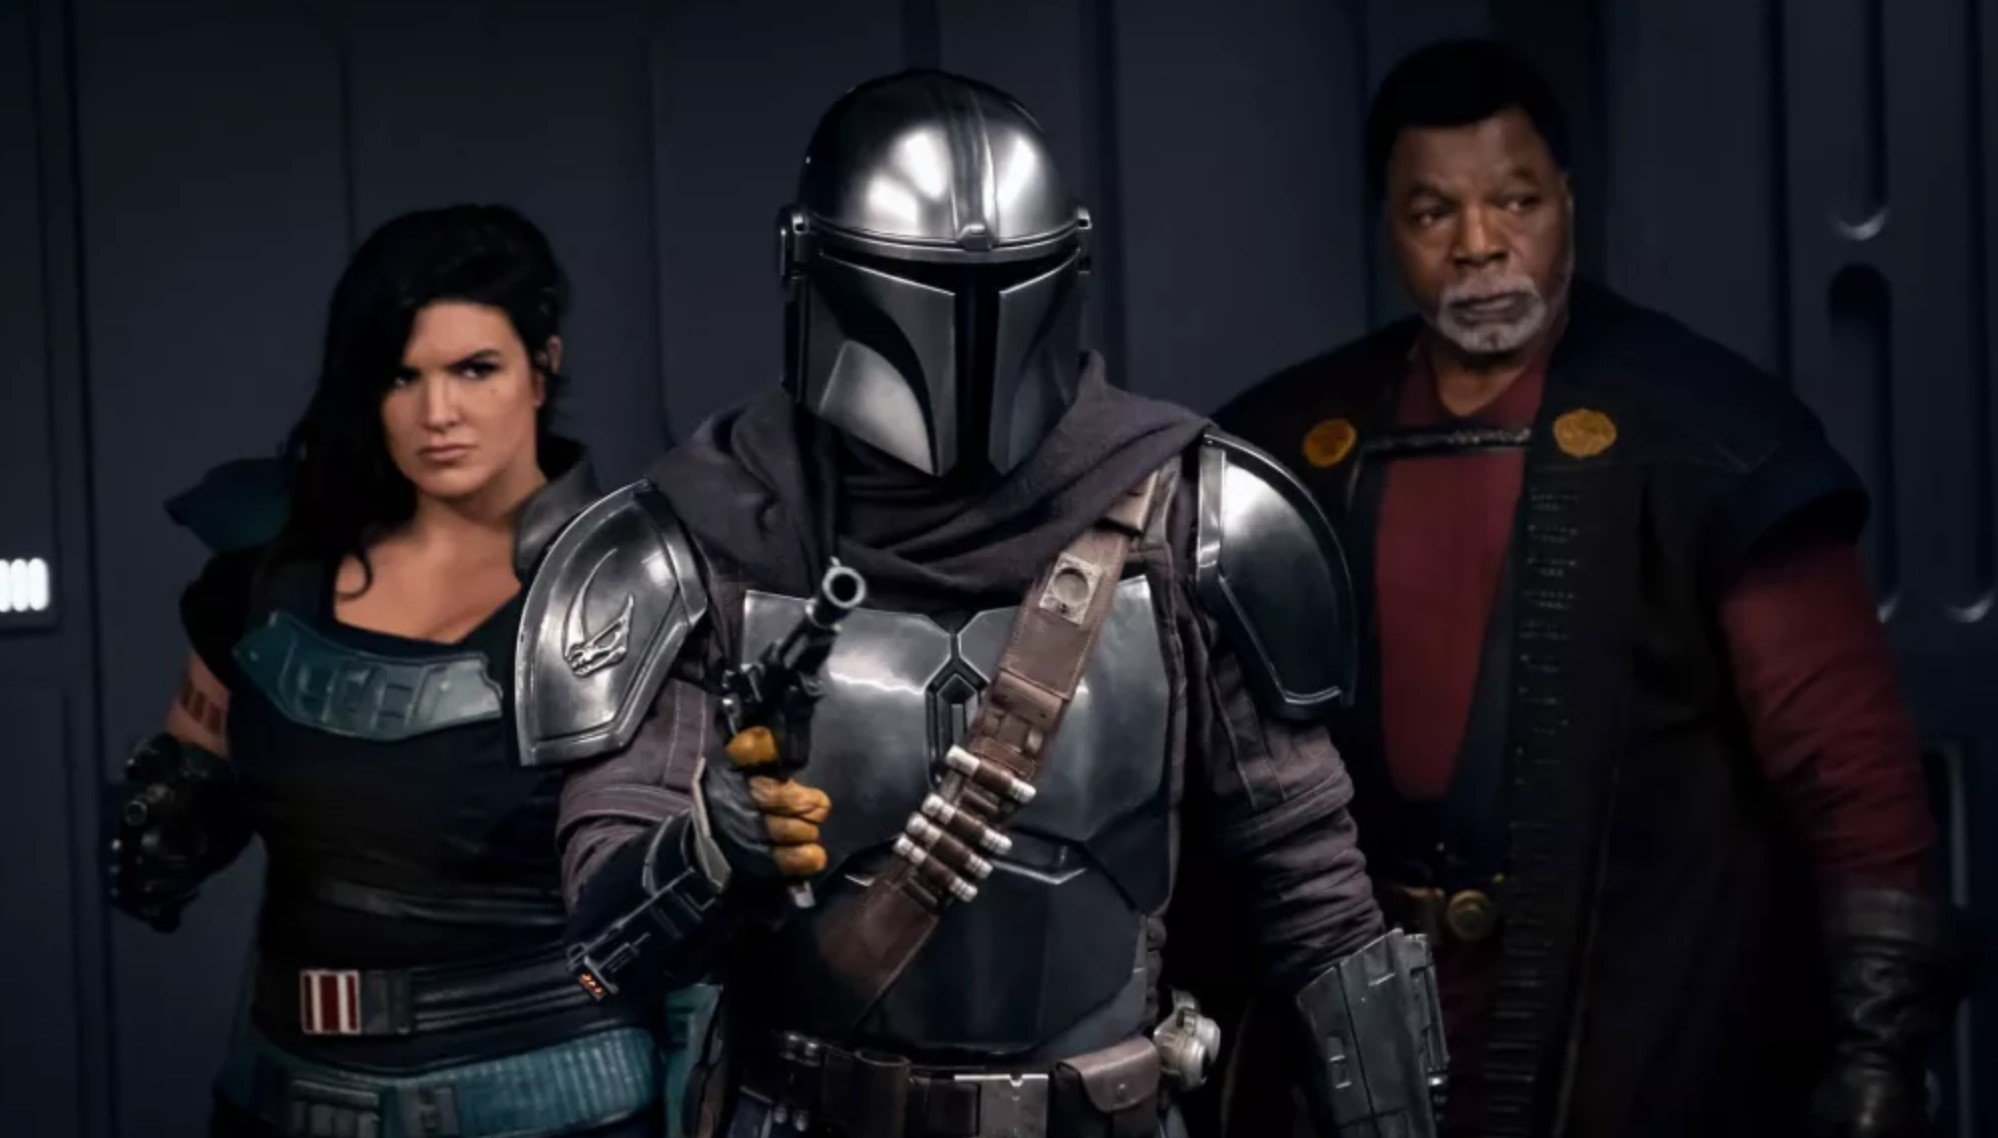 The Mandalorian Season 2 Episode 4 Star Wars Review Mando